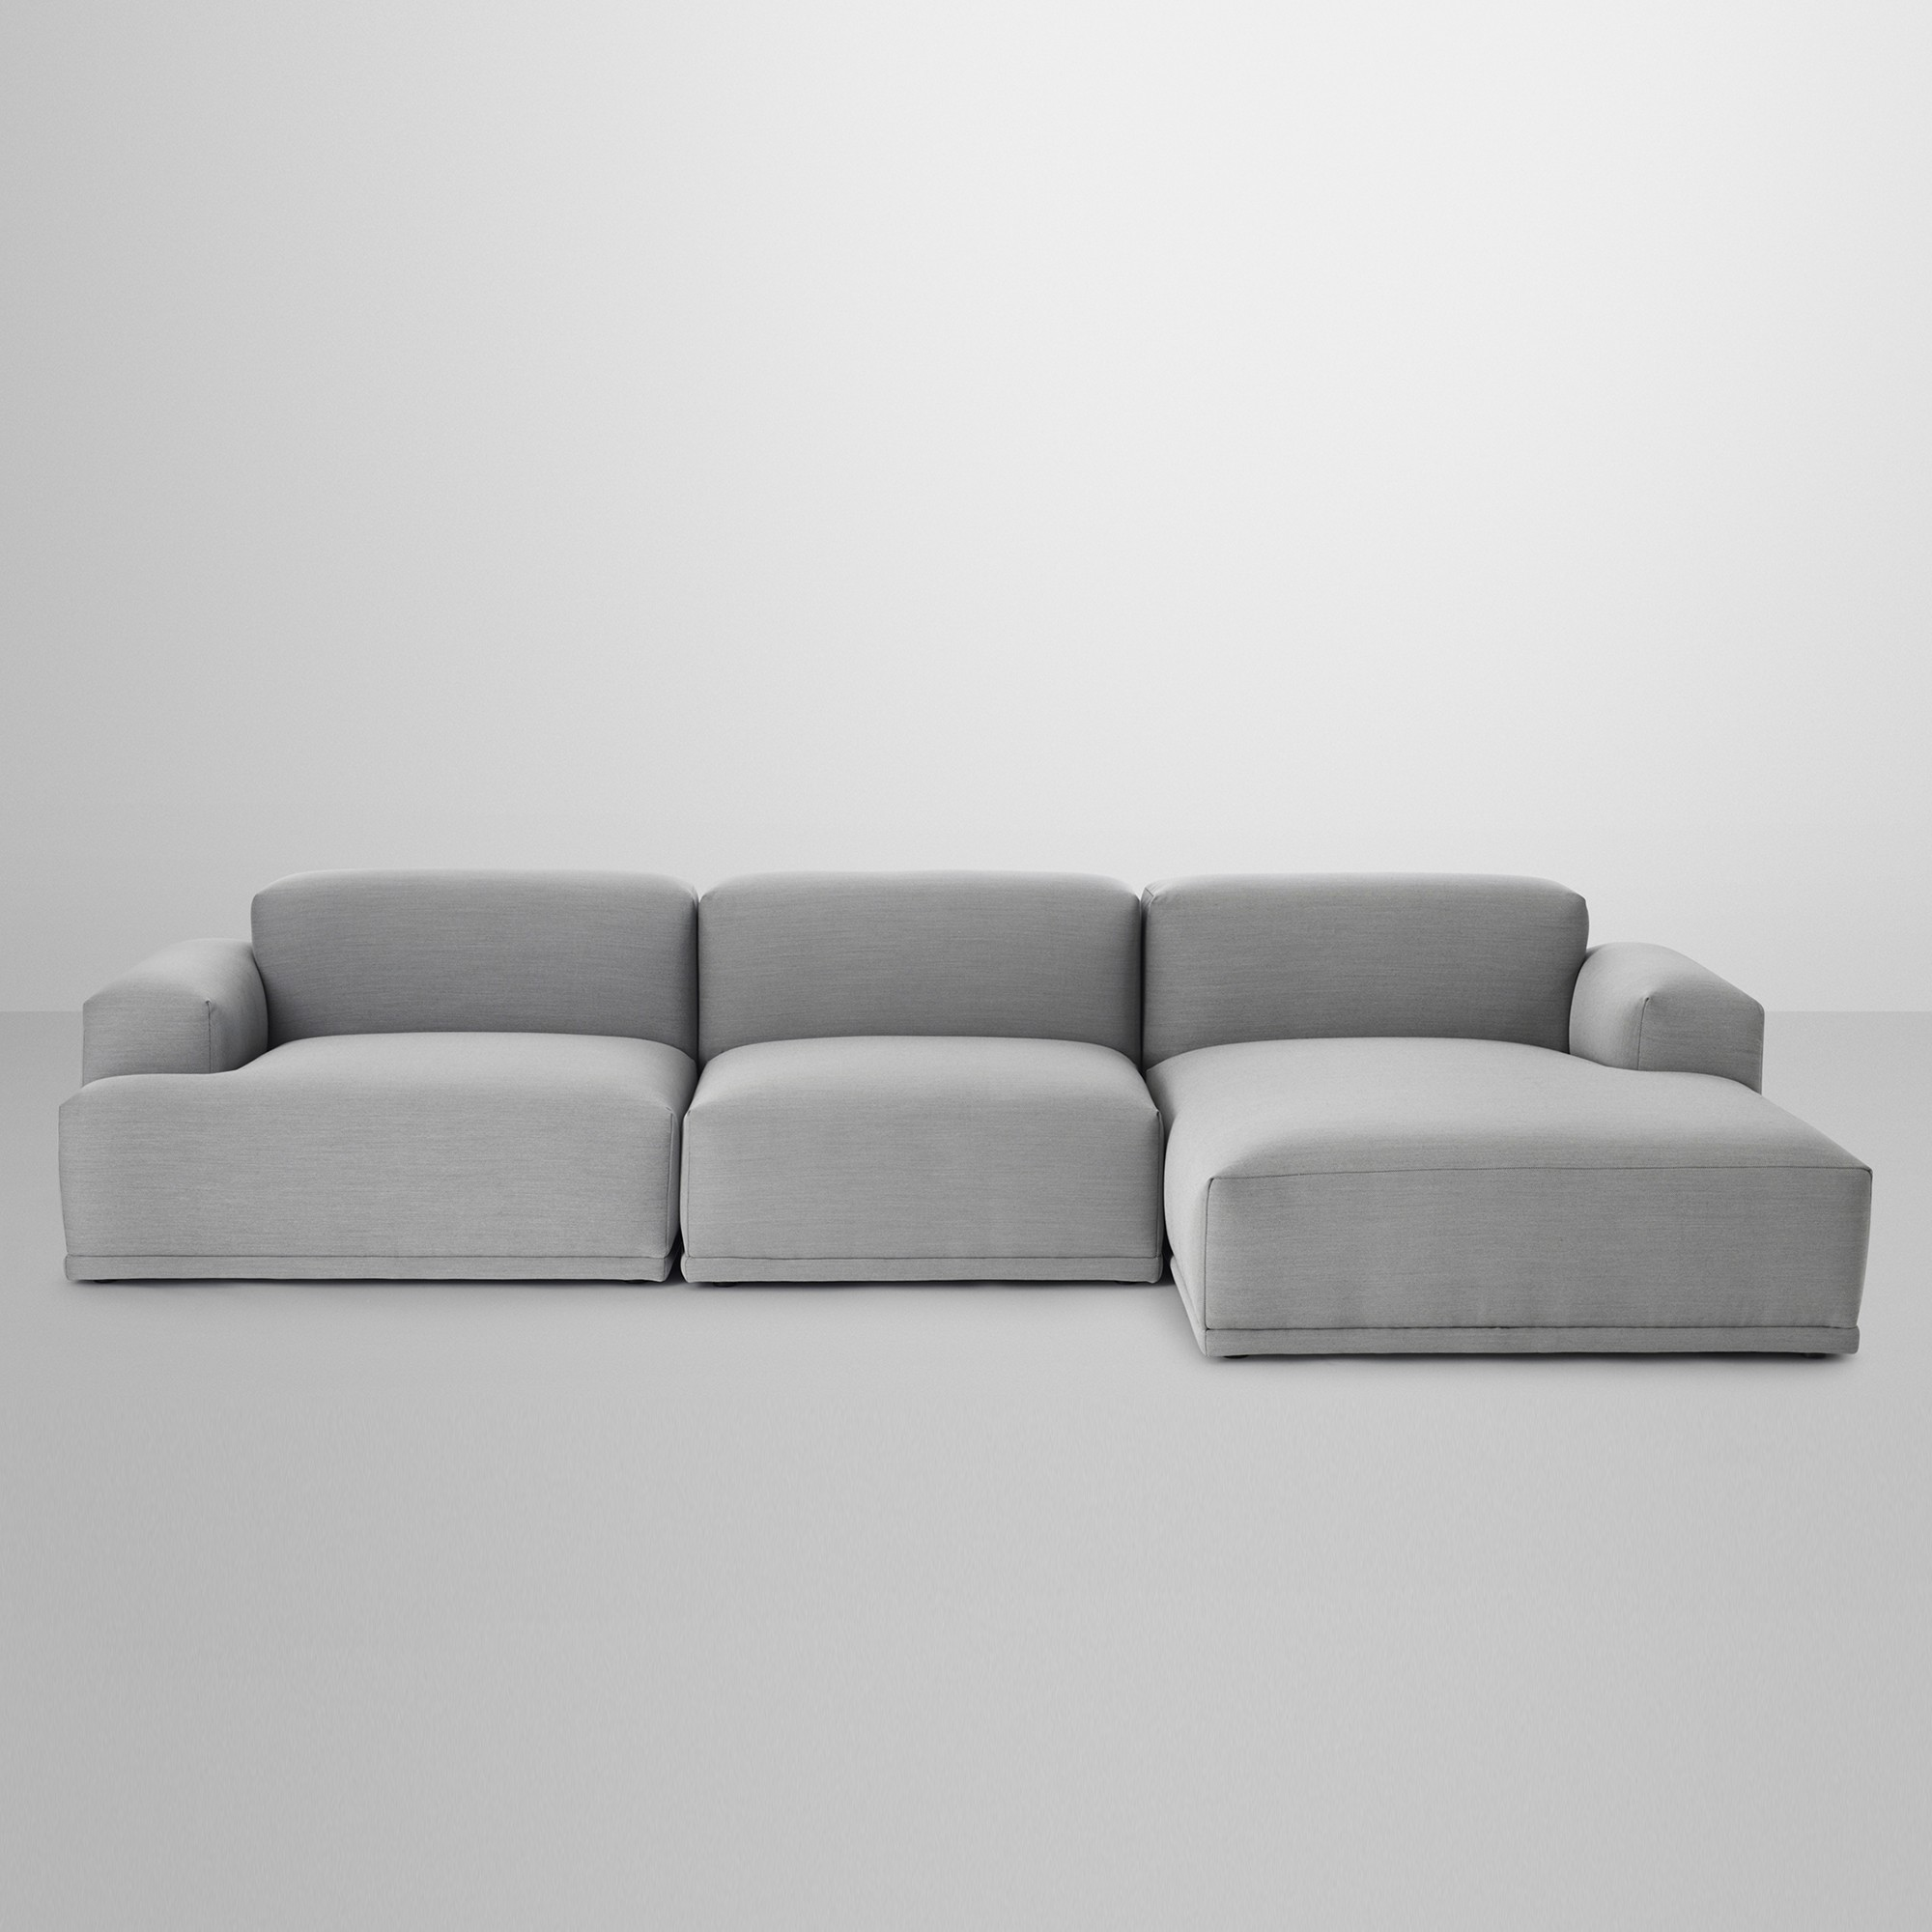 The modular 3 seaters lounge sofa CONNECT by the brand MUUTO was